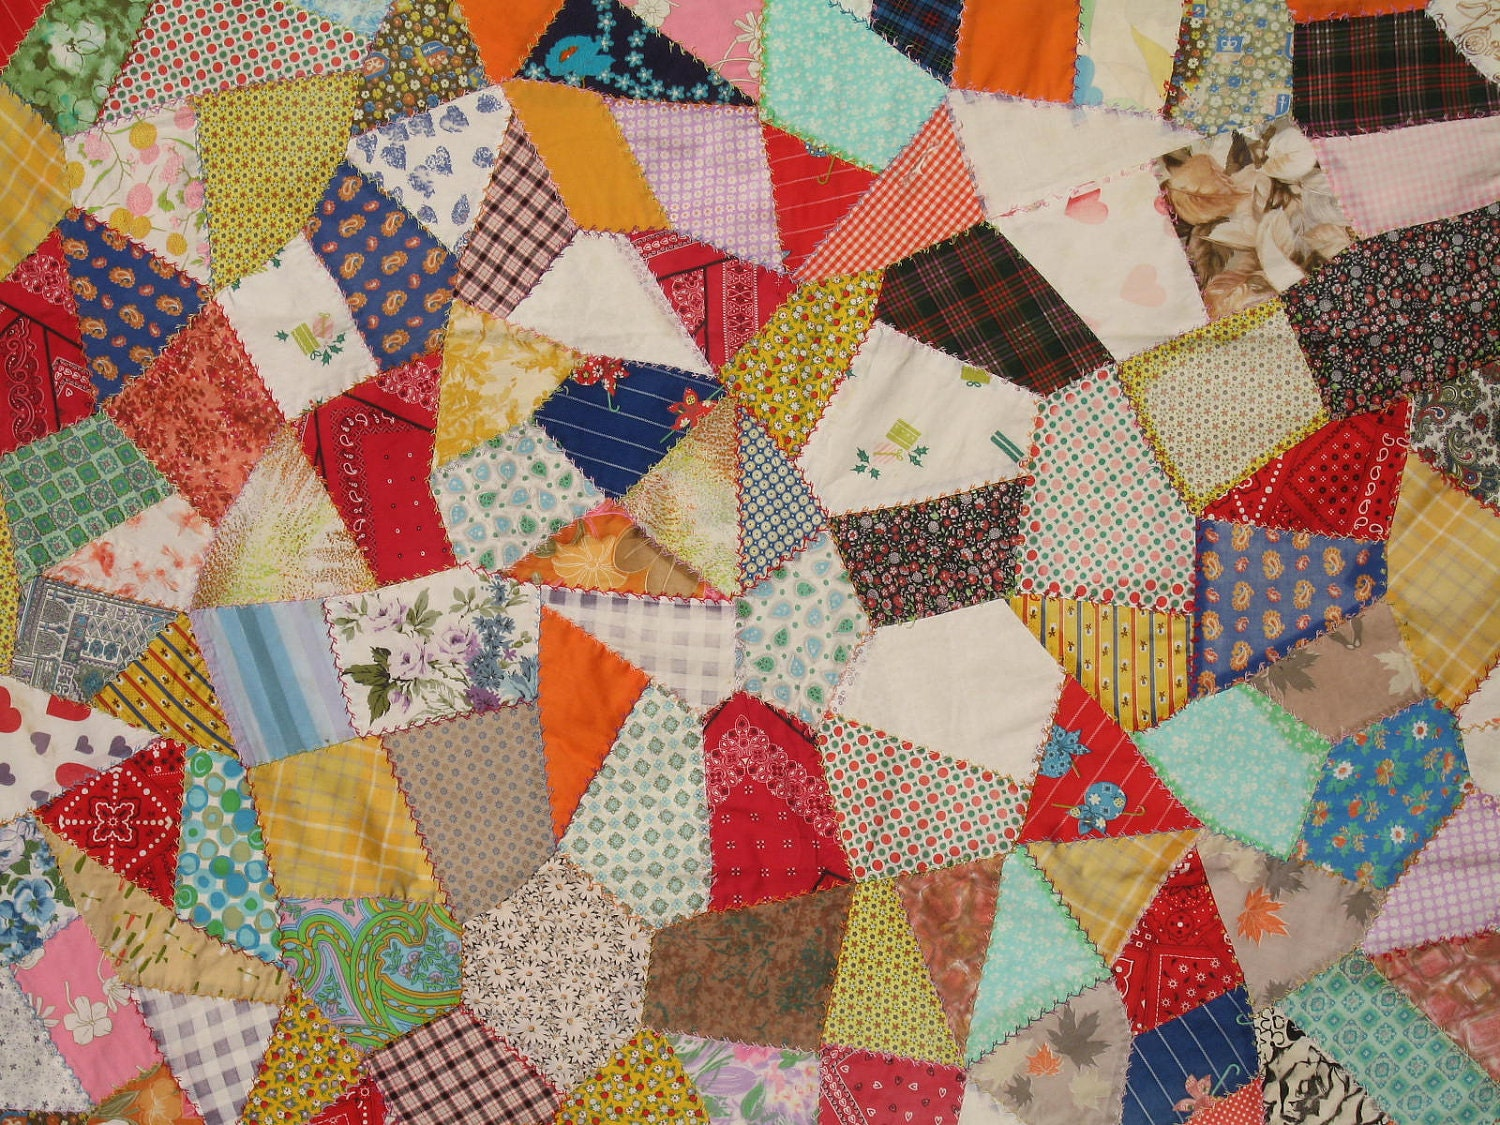 VINTAGE Crazy Quilt Bedspread Lap Quilt Wallhanging Country